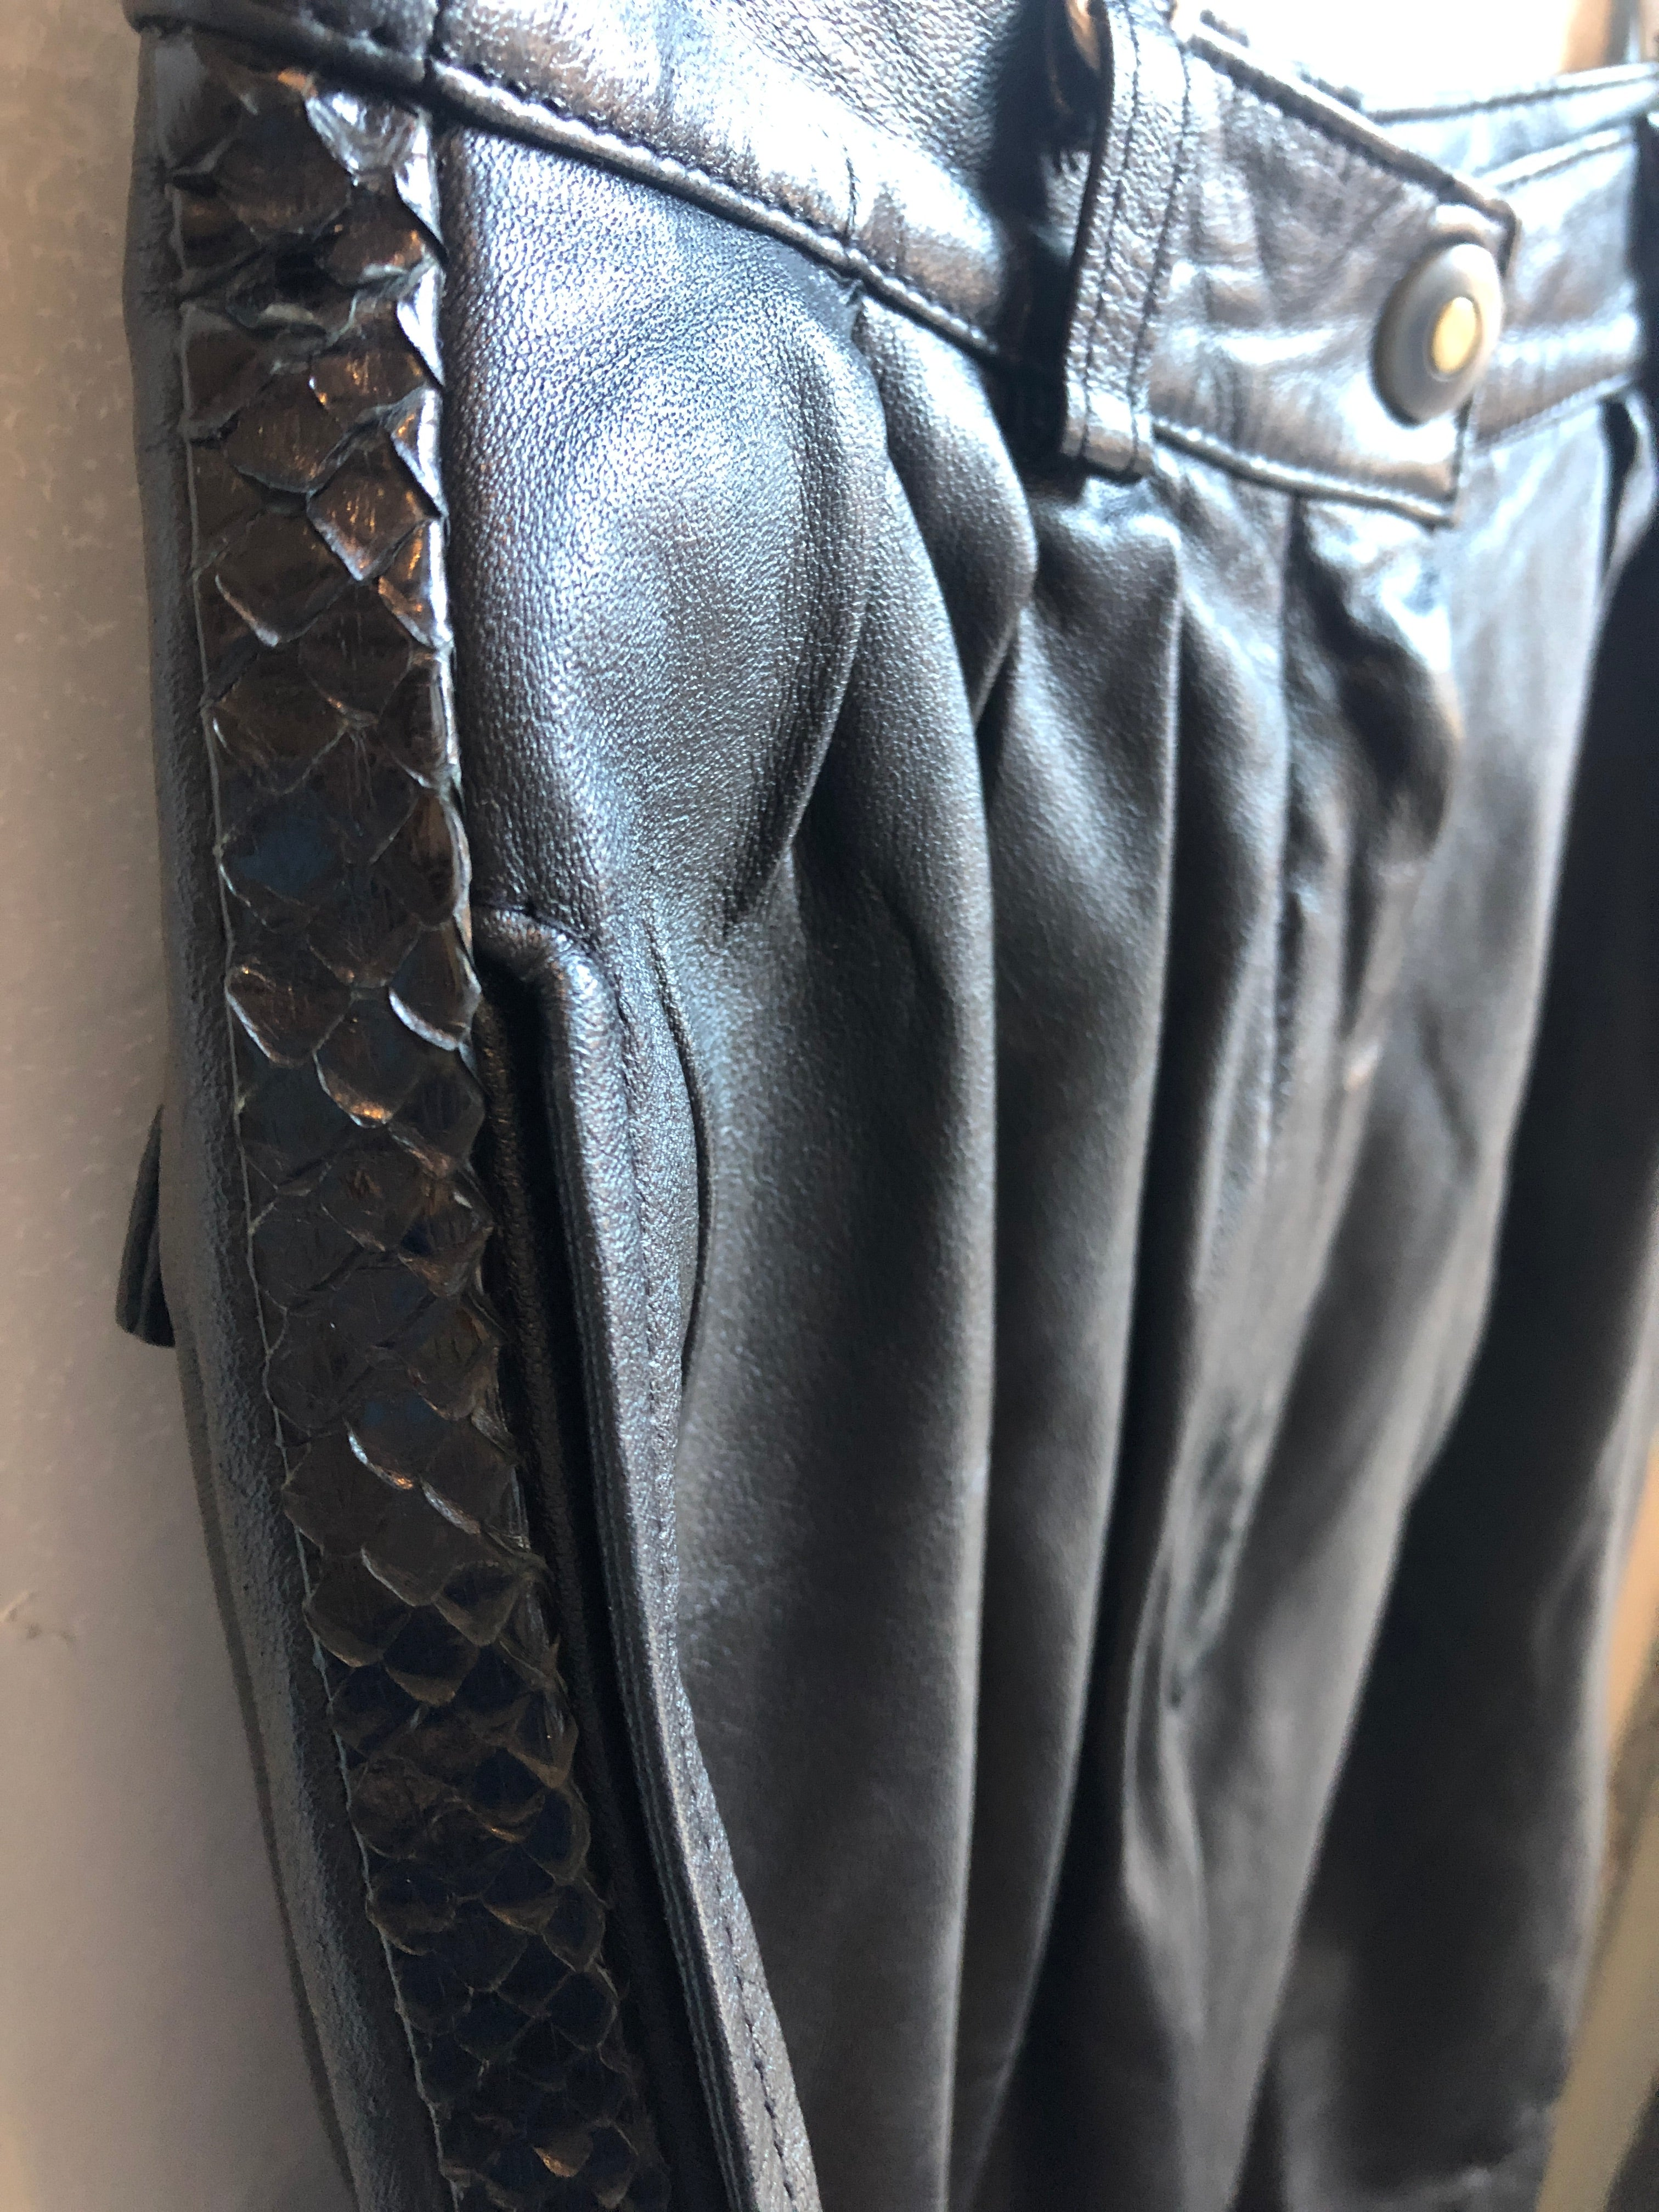 Karen by Anette & Mika Black Baggie Vintage Snakeskin Detail on the side Leather Pants 8